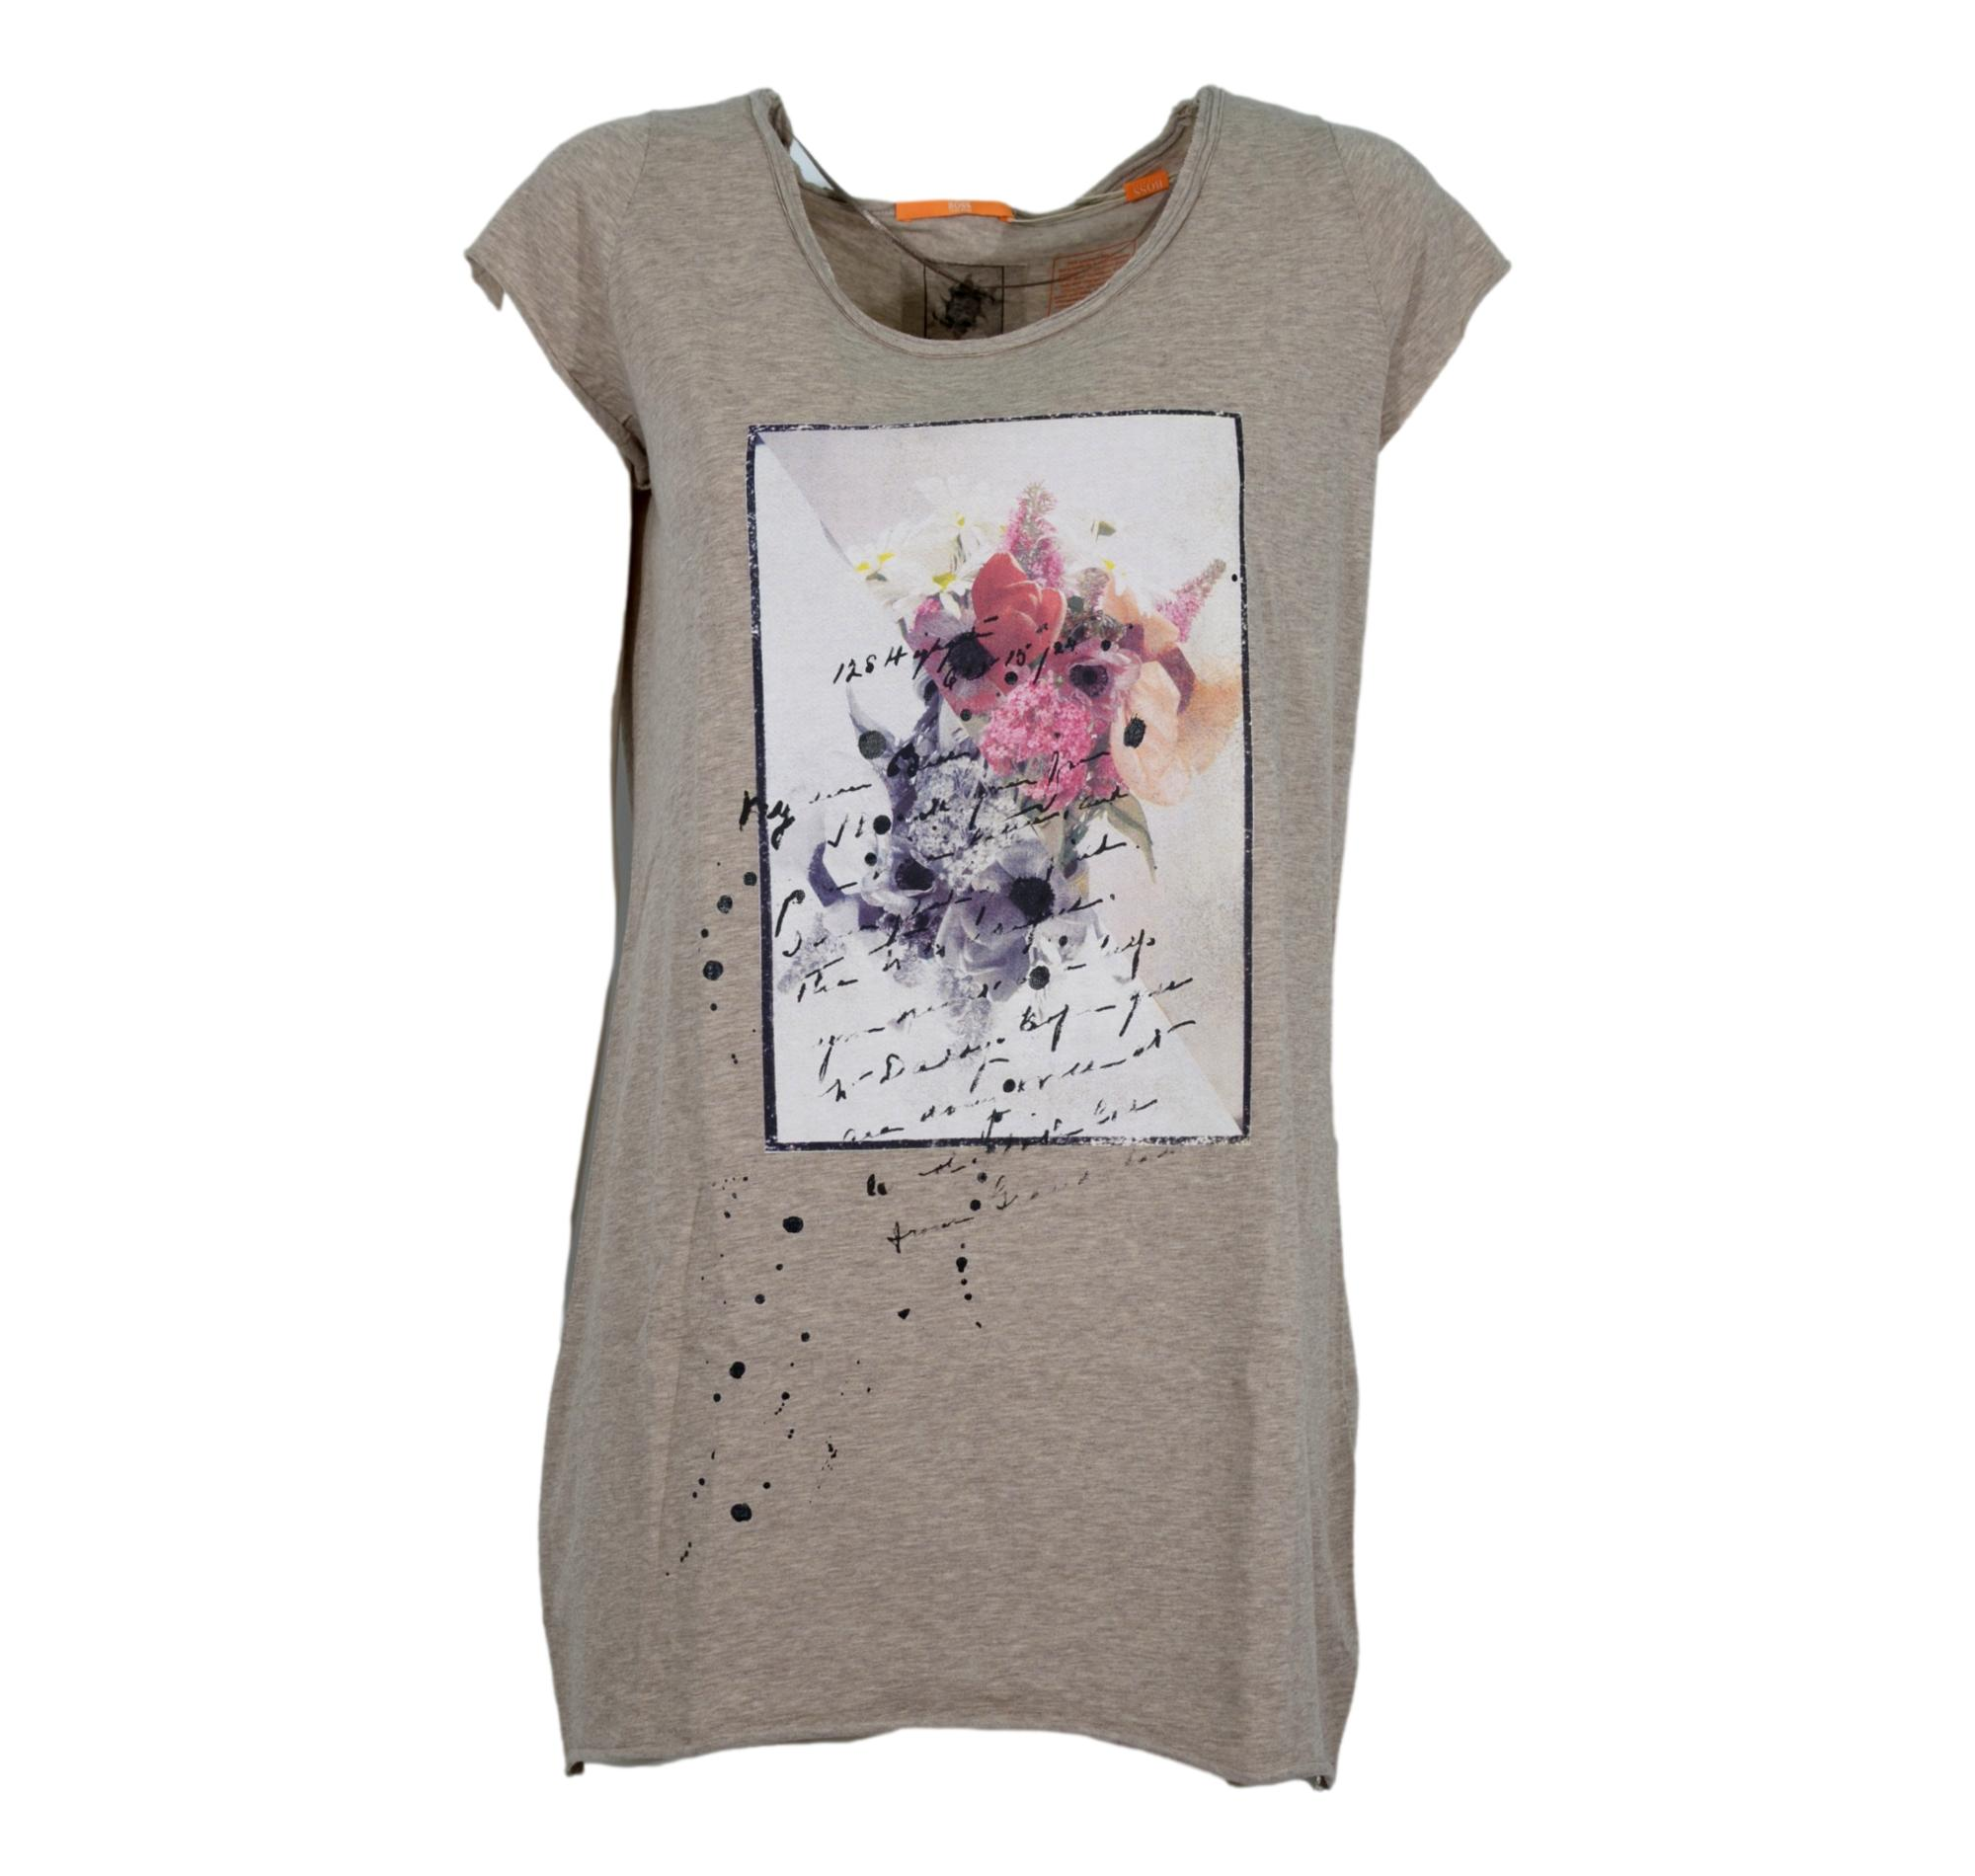 HUGO BOSS T-SHIRT DONNA COLORE BEIGE art. 50249102